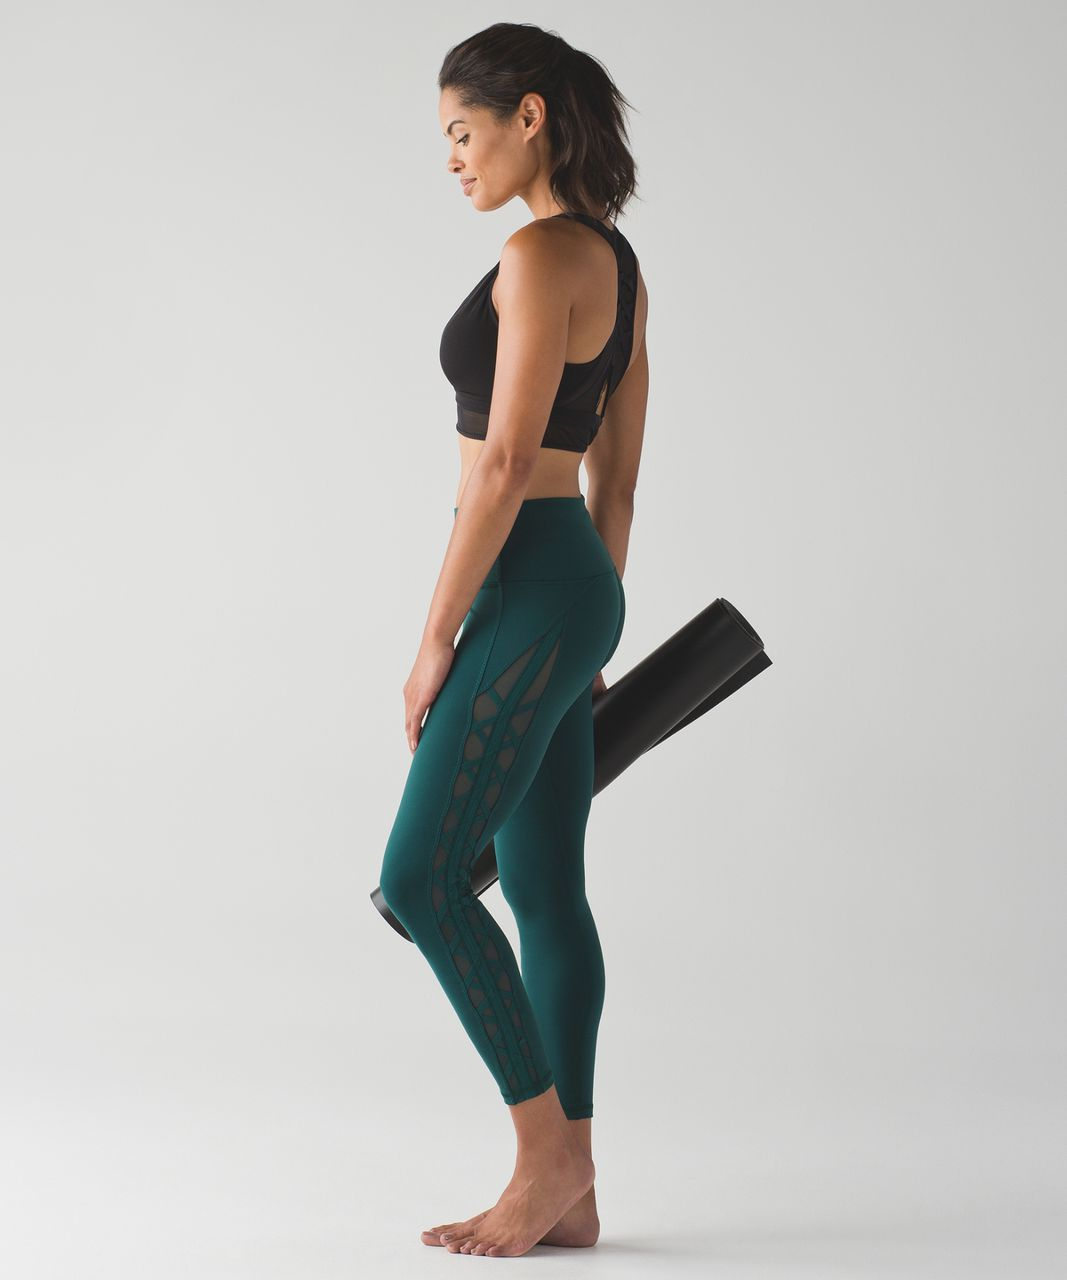 Lululemon High Times Pant (Rhythm) - Deep Green